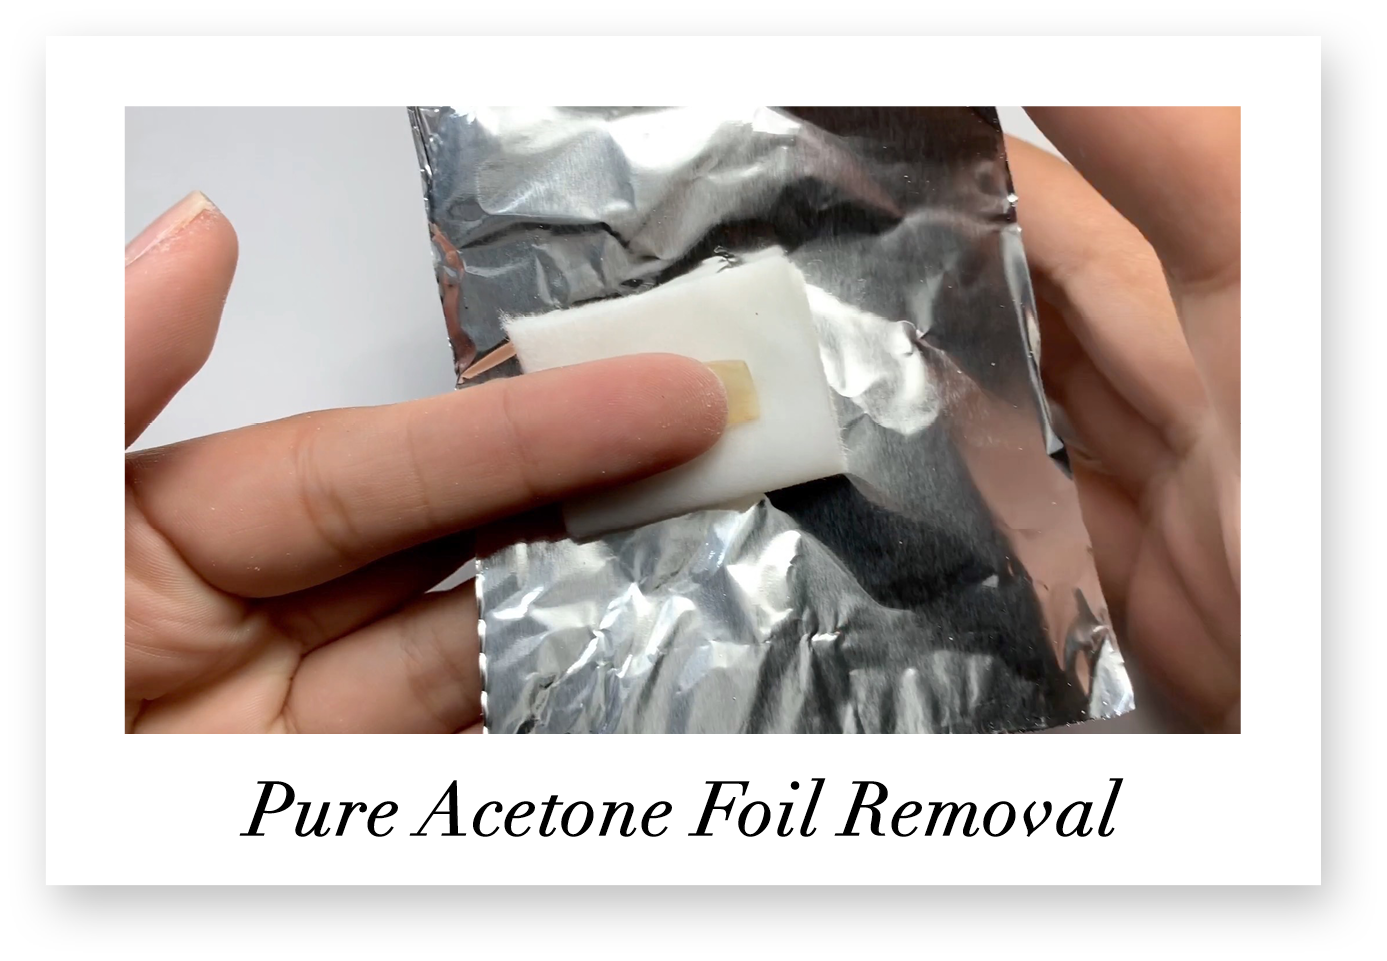 pureacetonefoilremoval_new.png